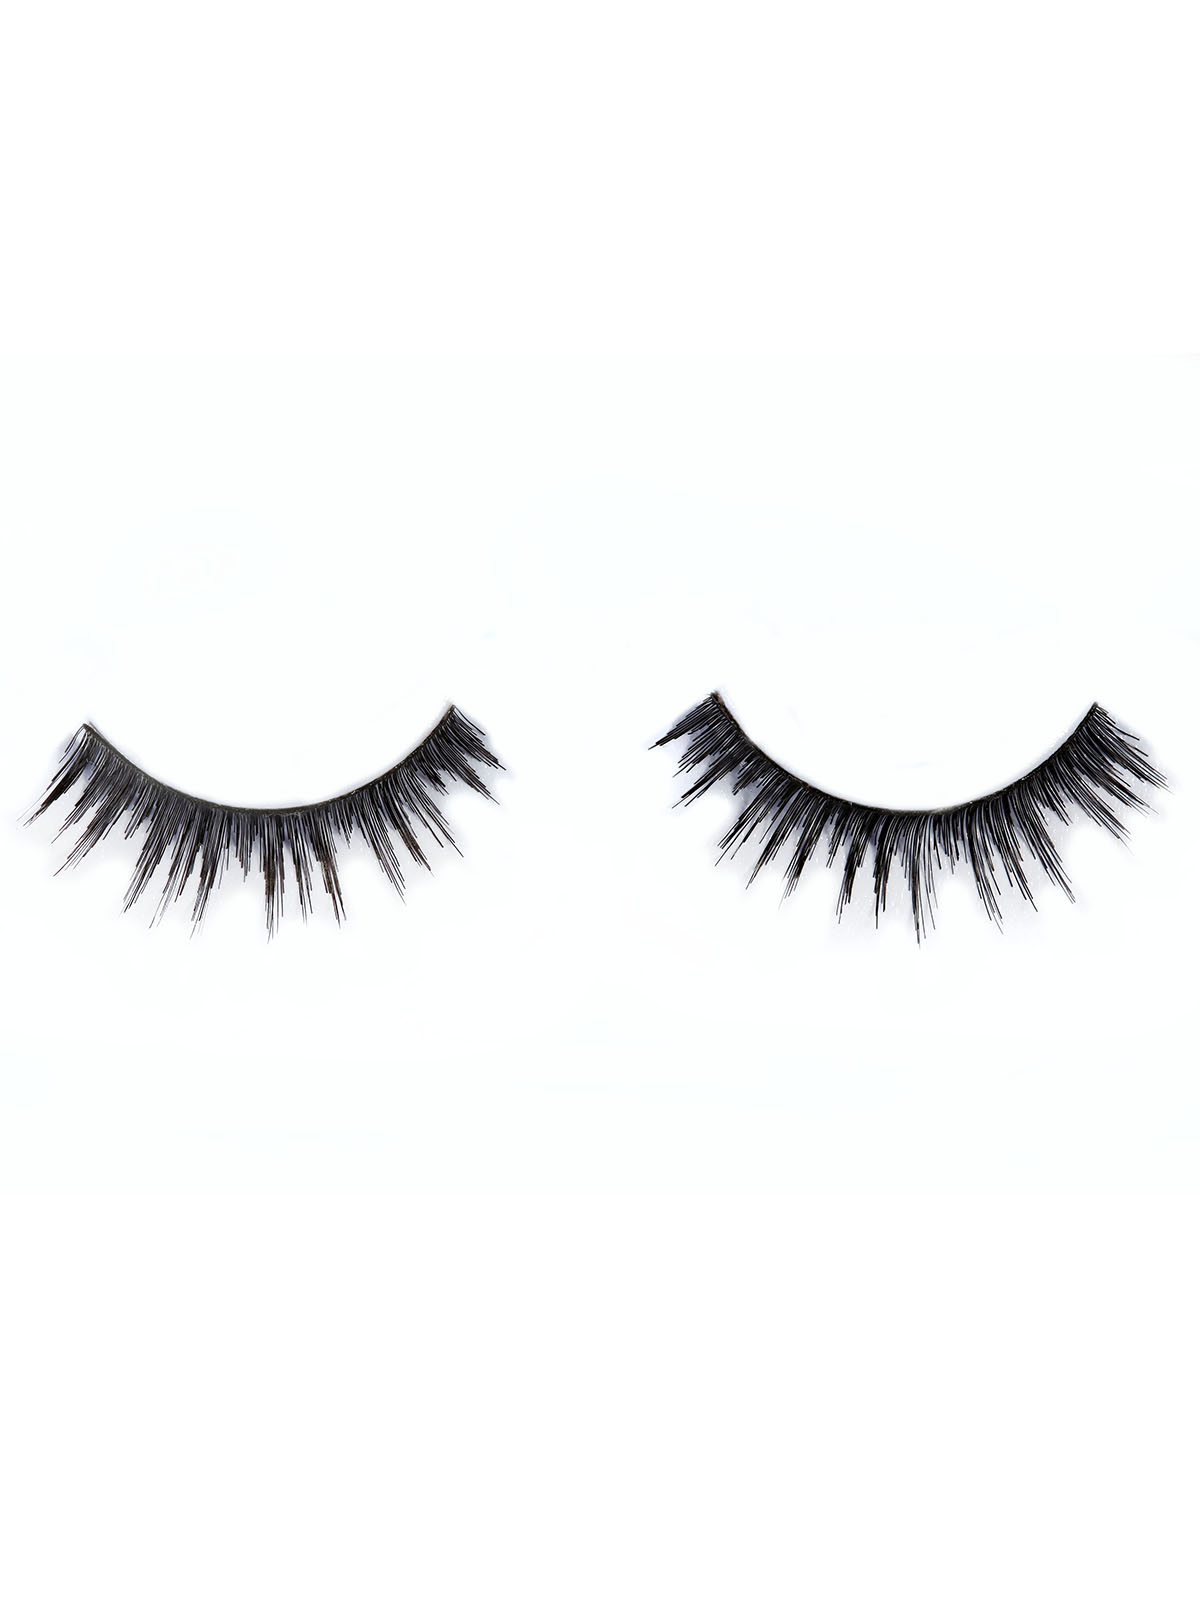 DD Lashes – #600 Black